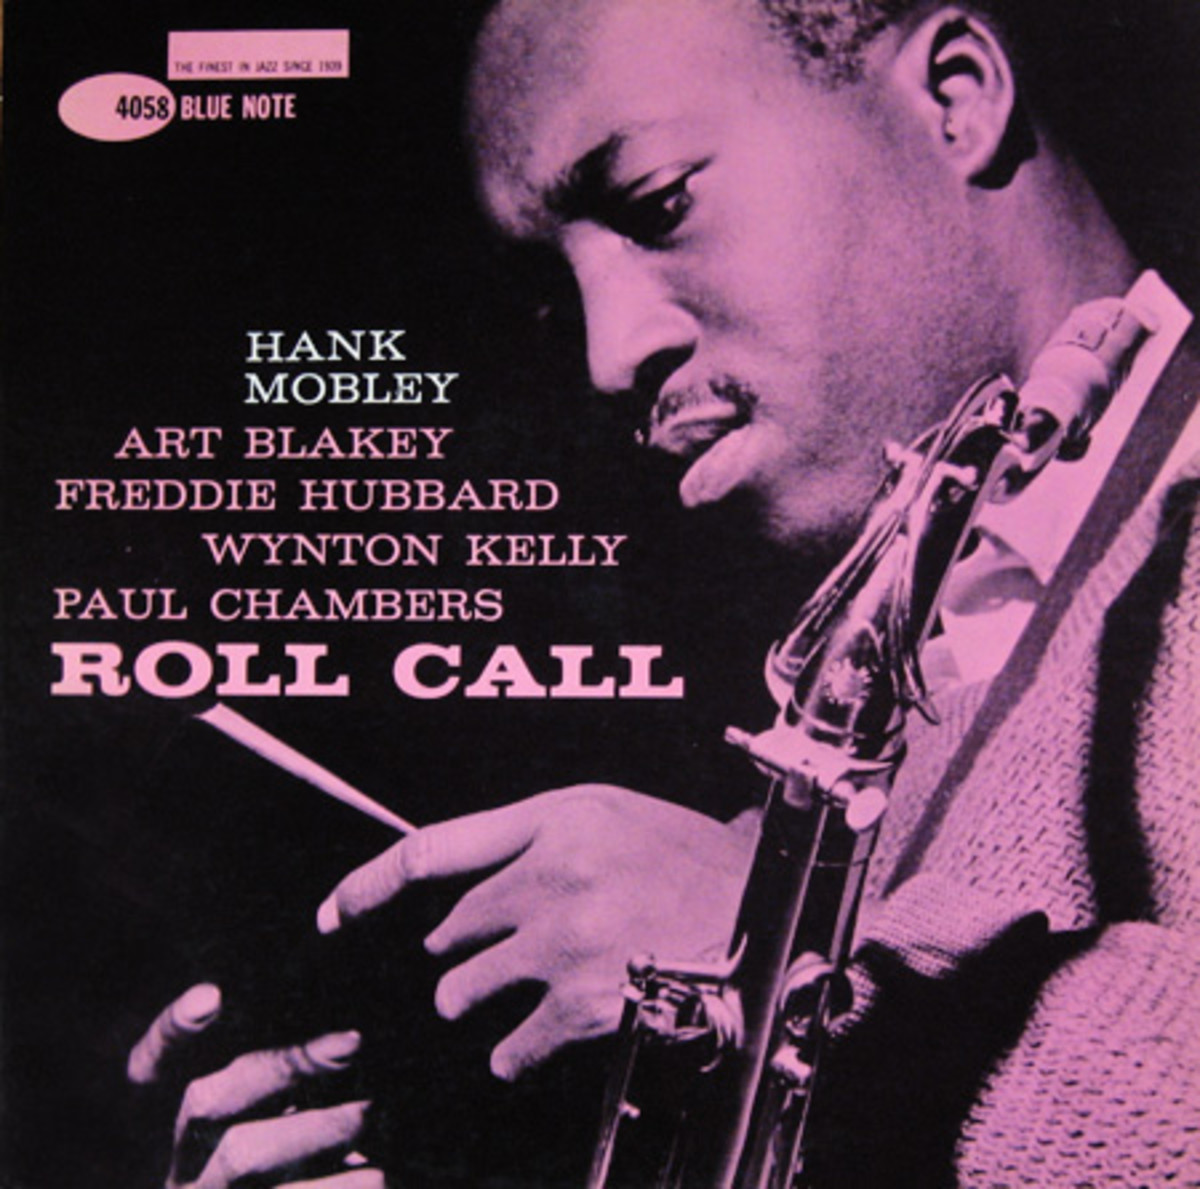 """Hank Mobley """"Roll Call"""" Blue Note Records 4058 12"""" LP Vinyl Record (1961) Album Cover Design by Reid Miles, Photo by Francis Wolff"""